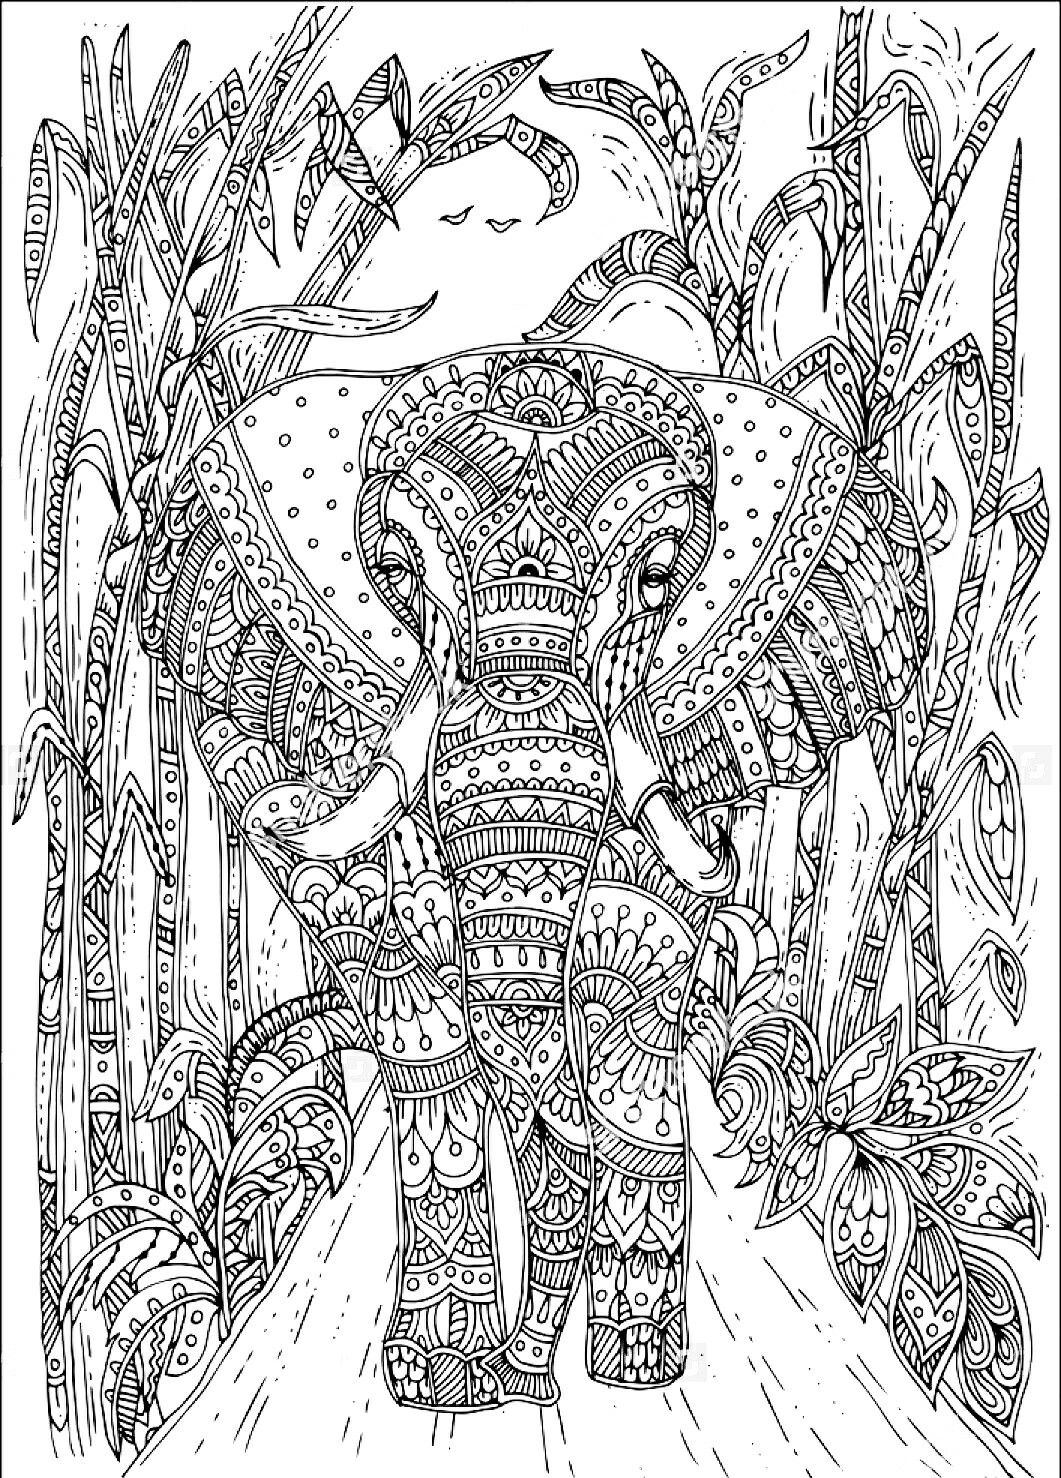 Colouring Sheets Coloring Pages Books Tribal Elephant Realistic Drawings Mandala Design Animal Patterns Stress Relief Art Therapy